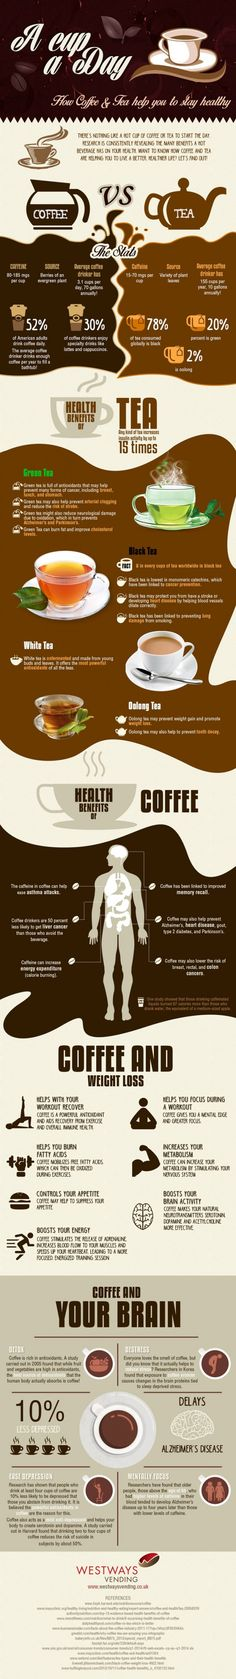 #Coffee vs Tea.... Which is better for you? Enjoy a cup and read more about your favourite #hotbeverage #coffee